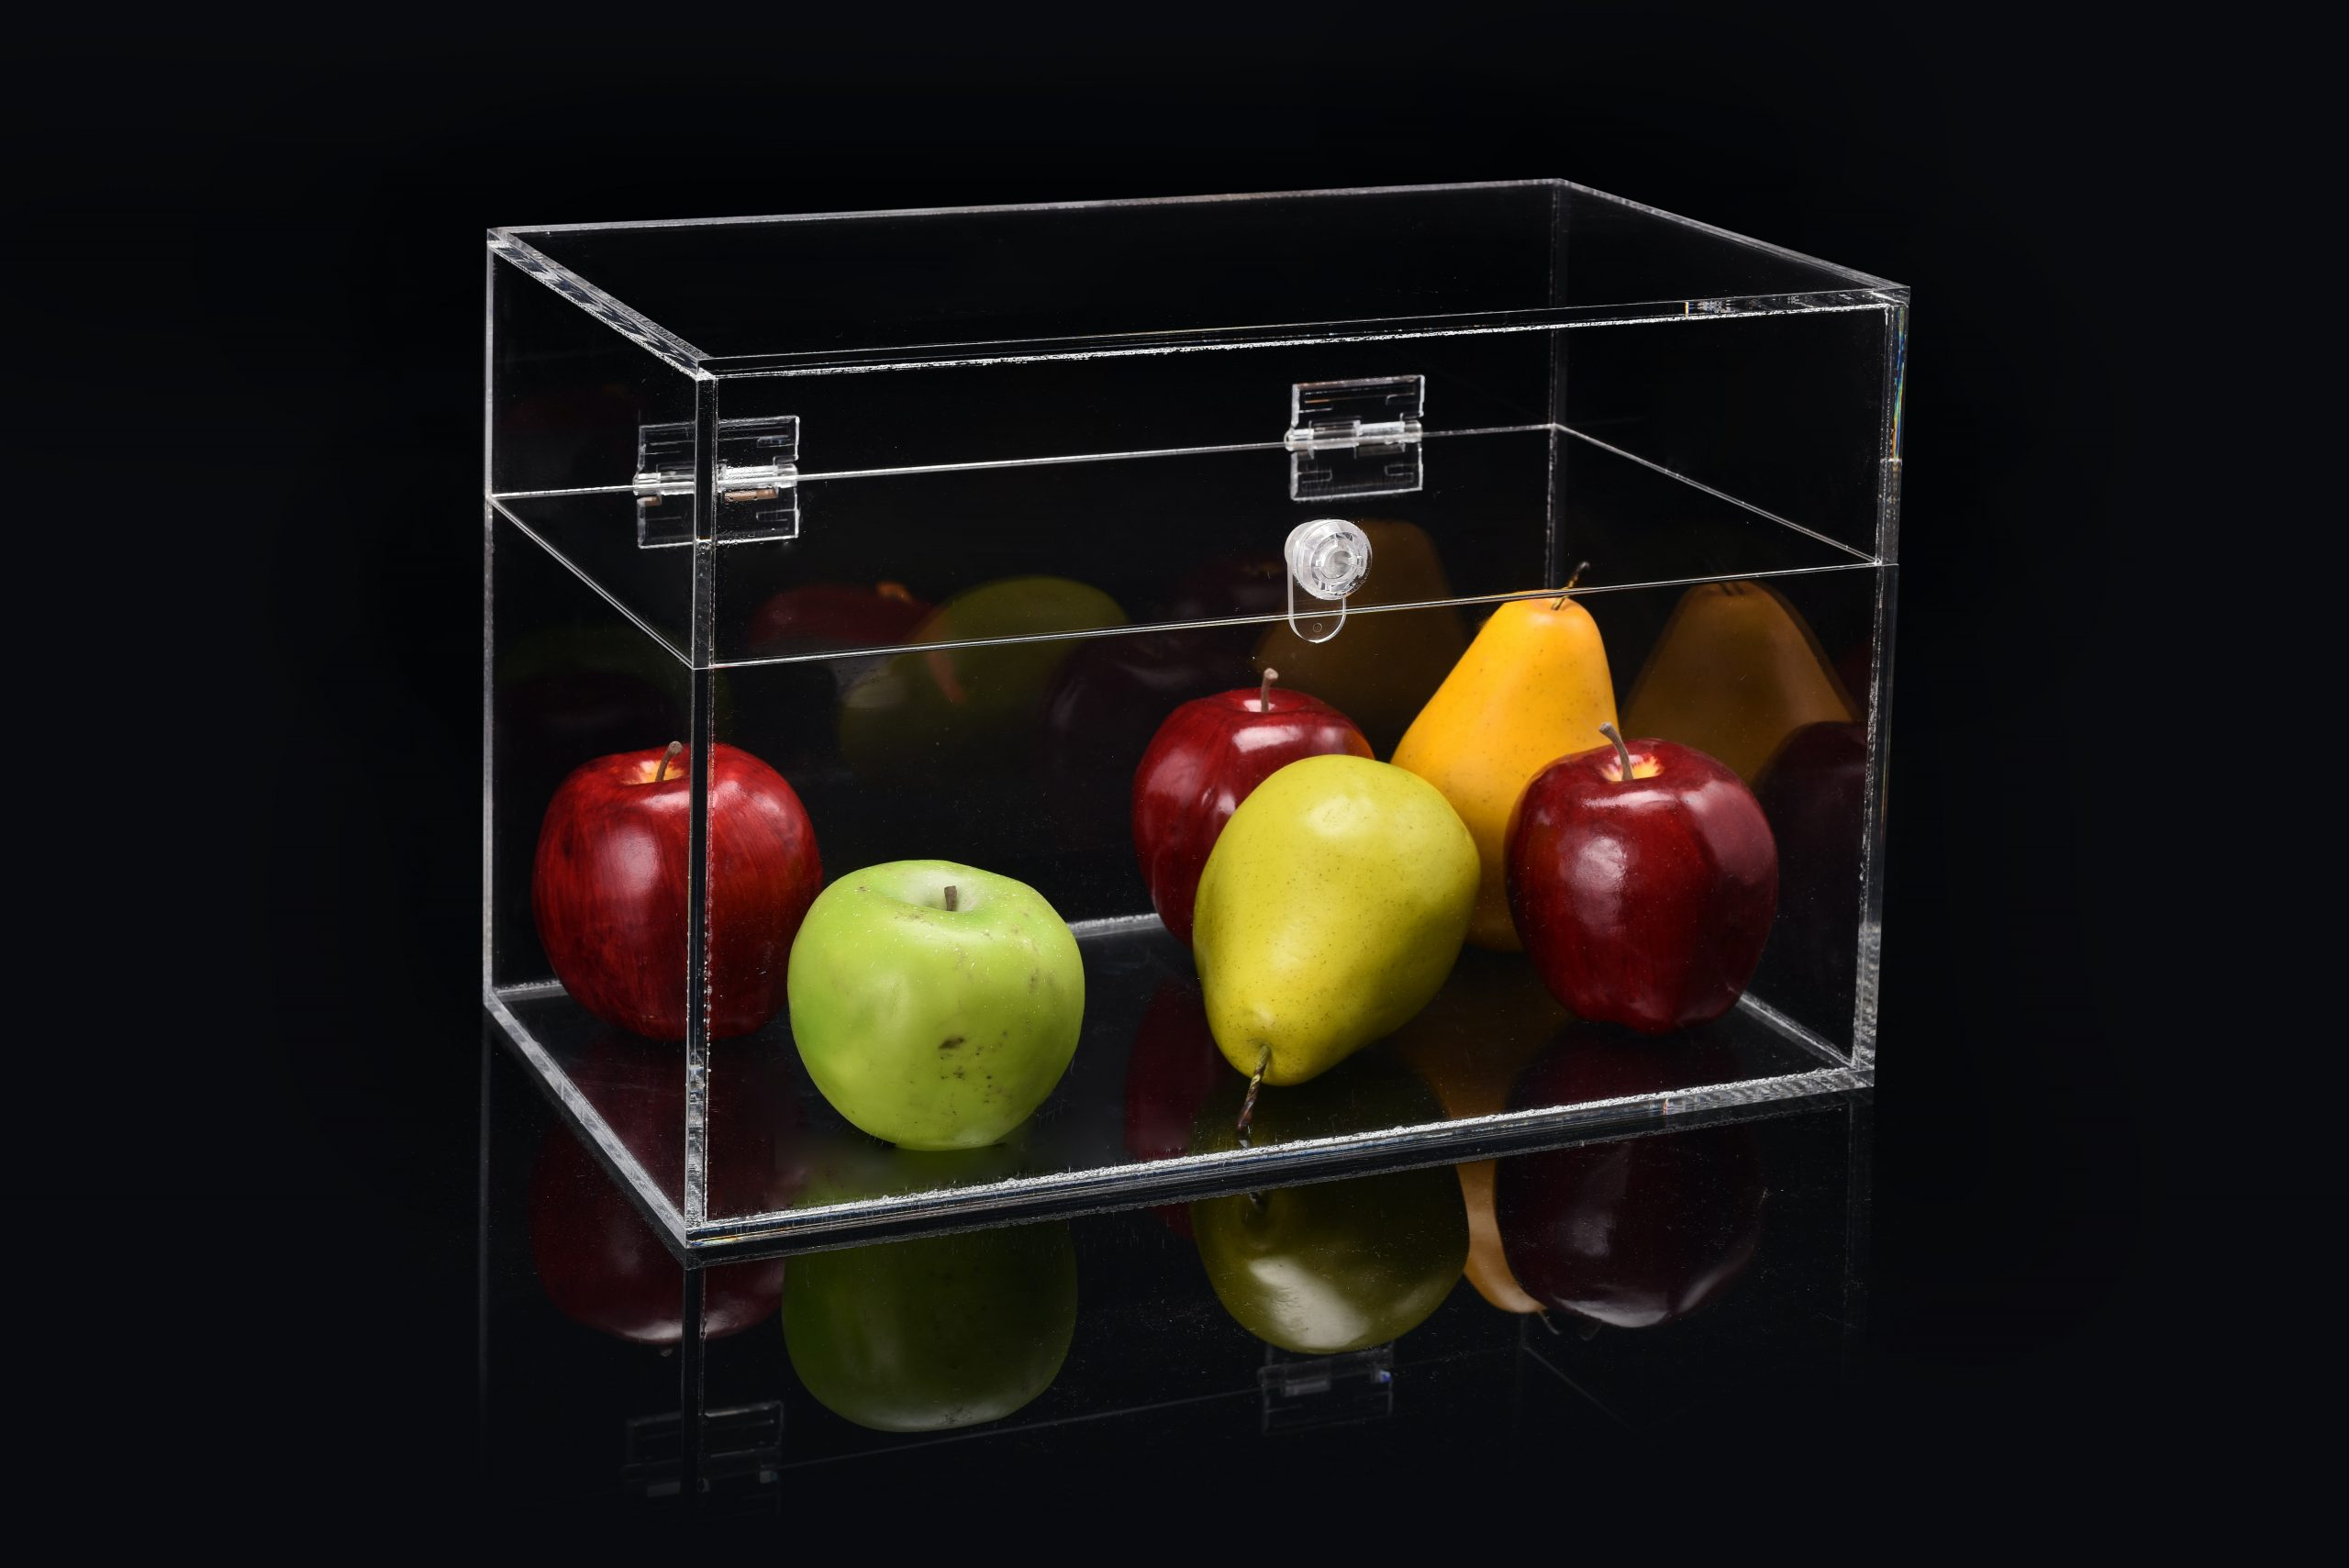 Clear rectangular box container fruits like pears and apples